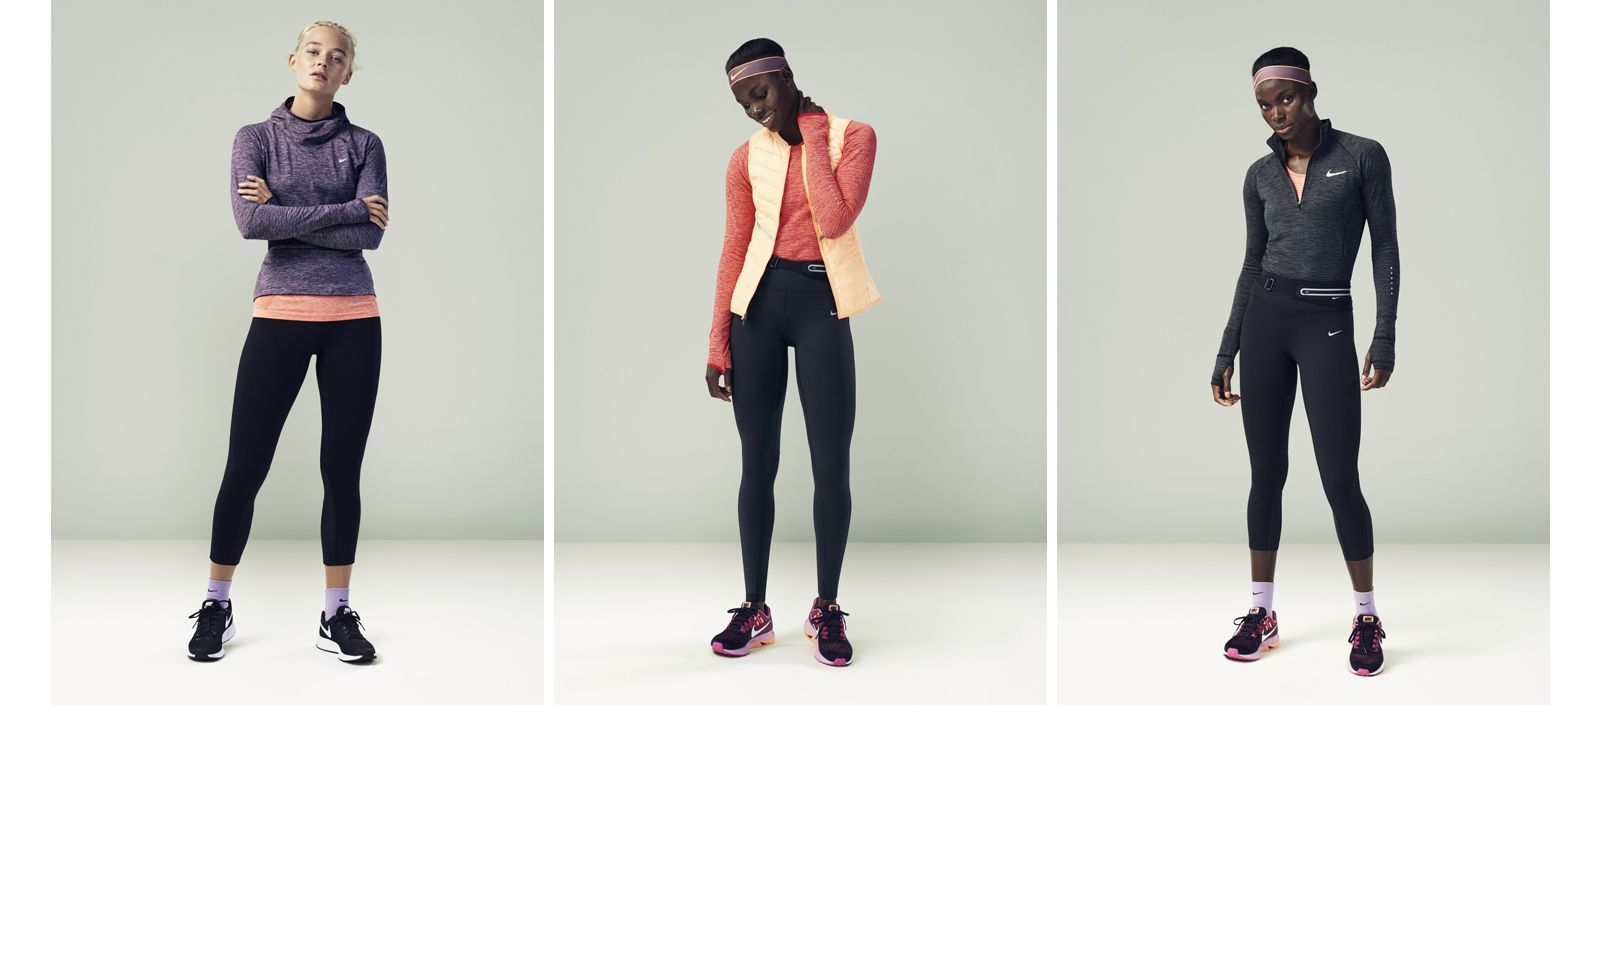 Browse Nike.com for women's looks. Find tips on choosing the right apparel for the season and order online >